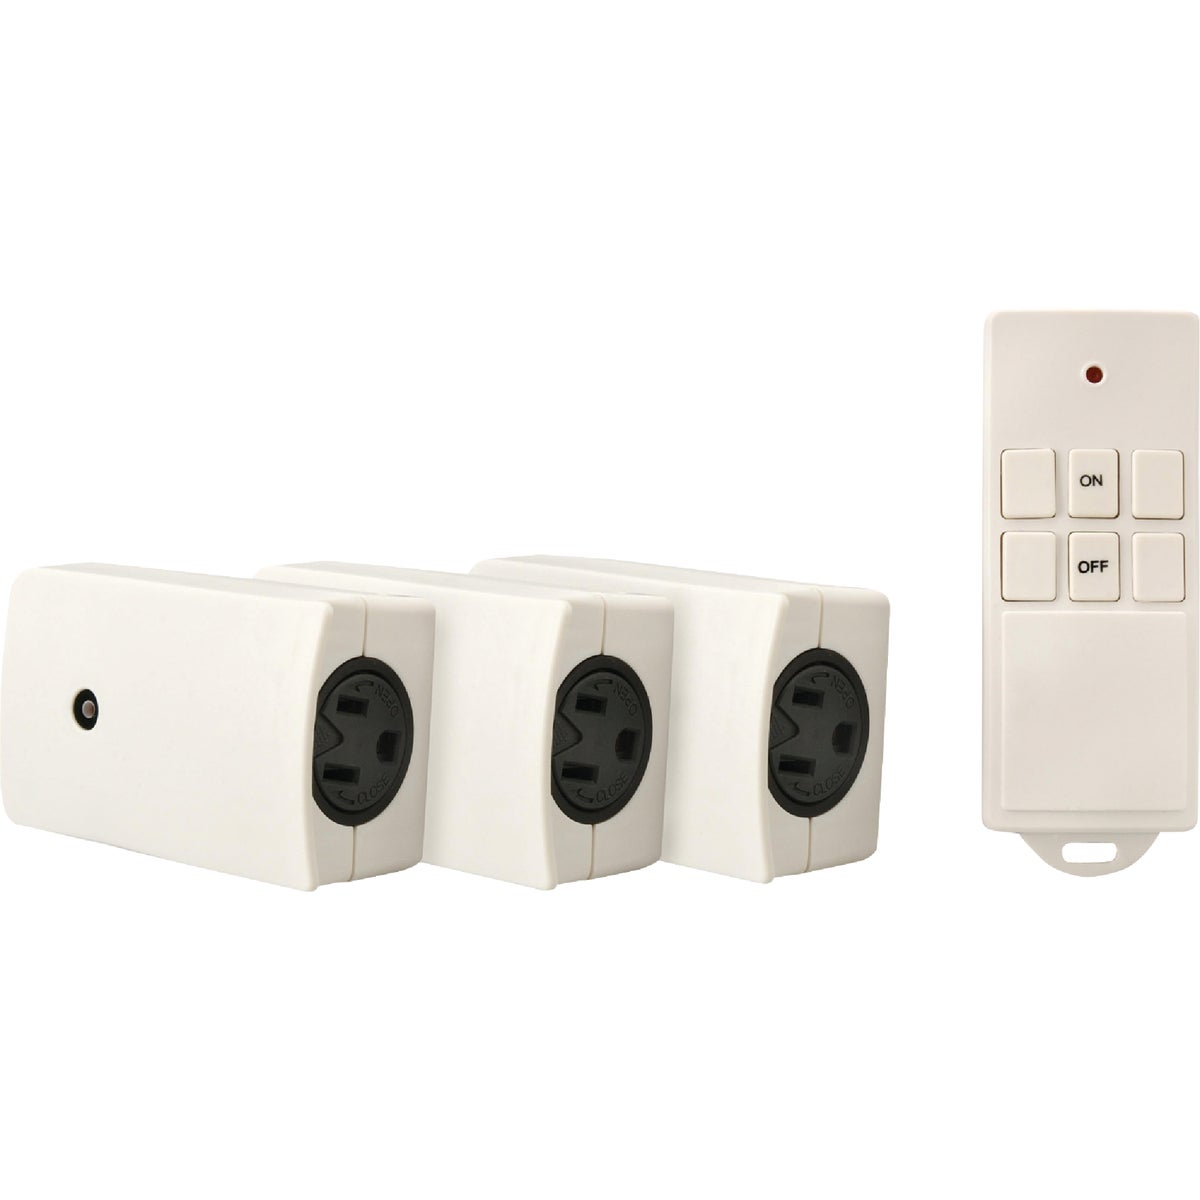 3PK REMOTE OUTLETS